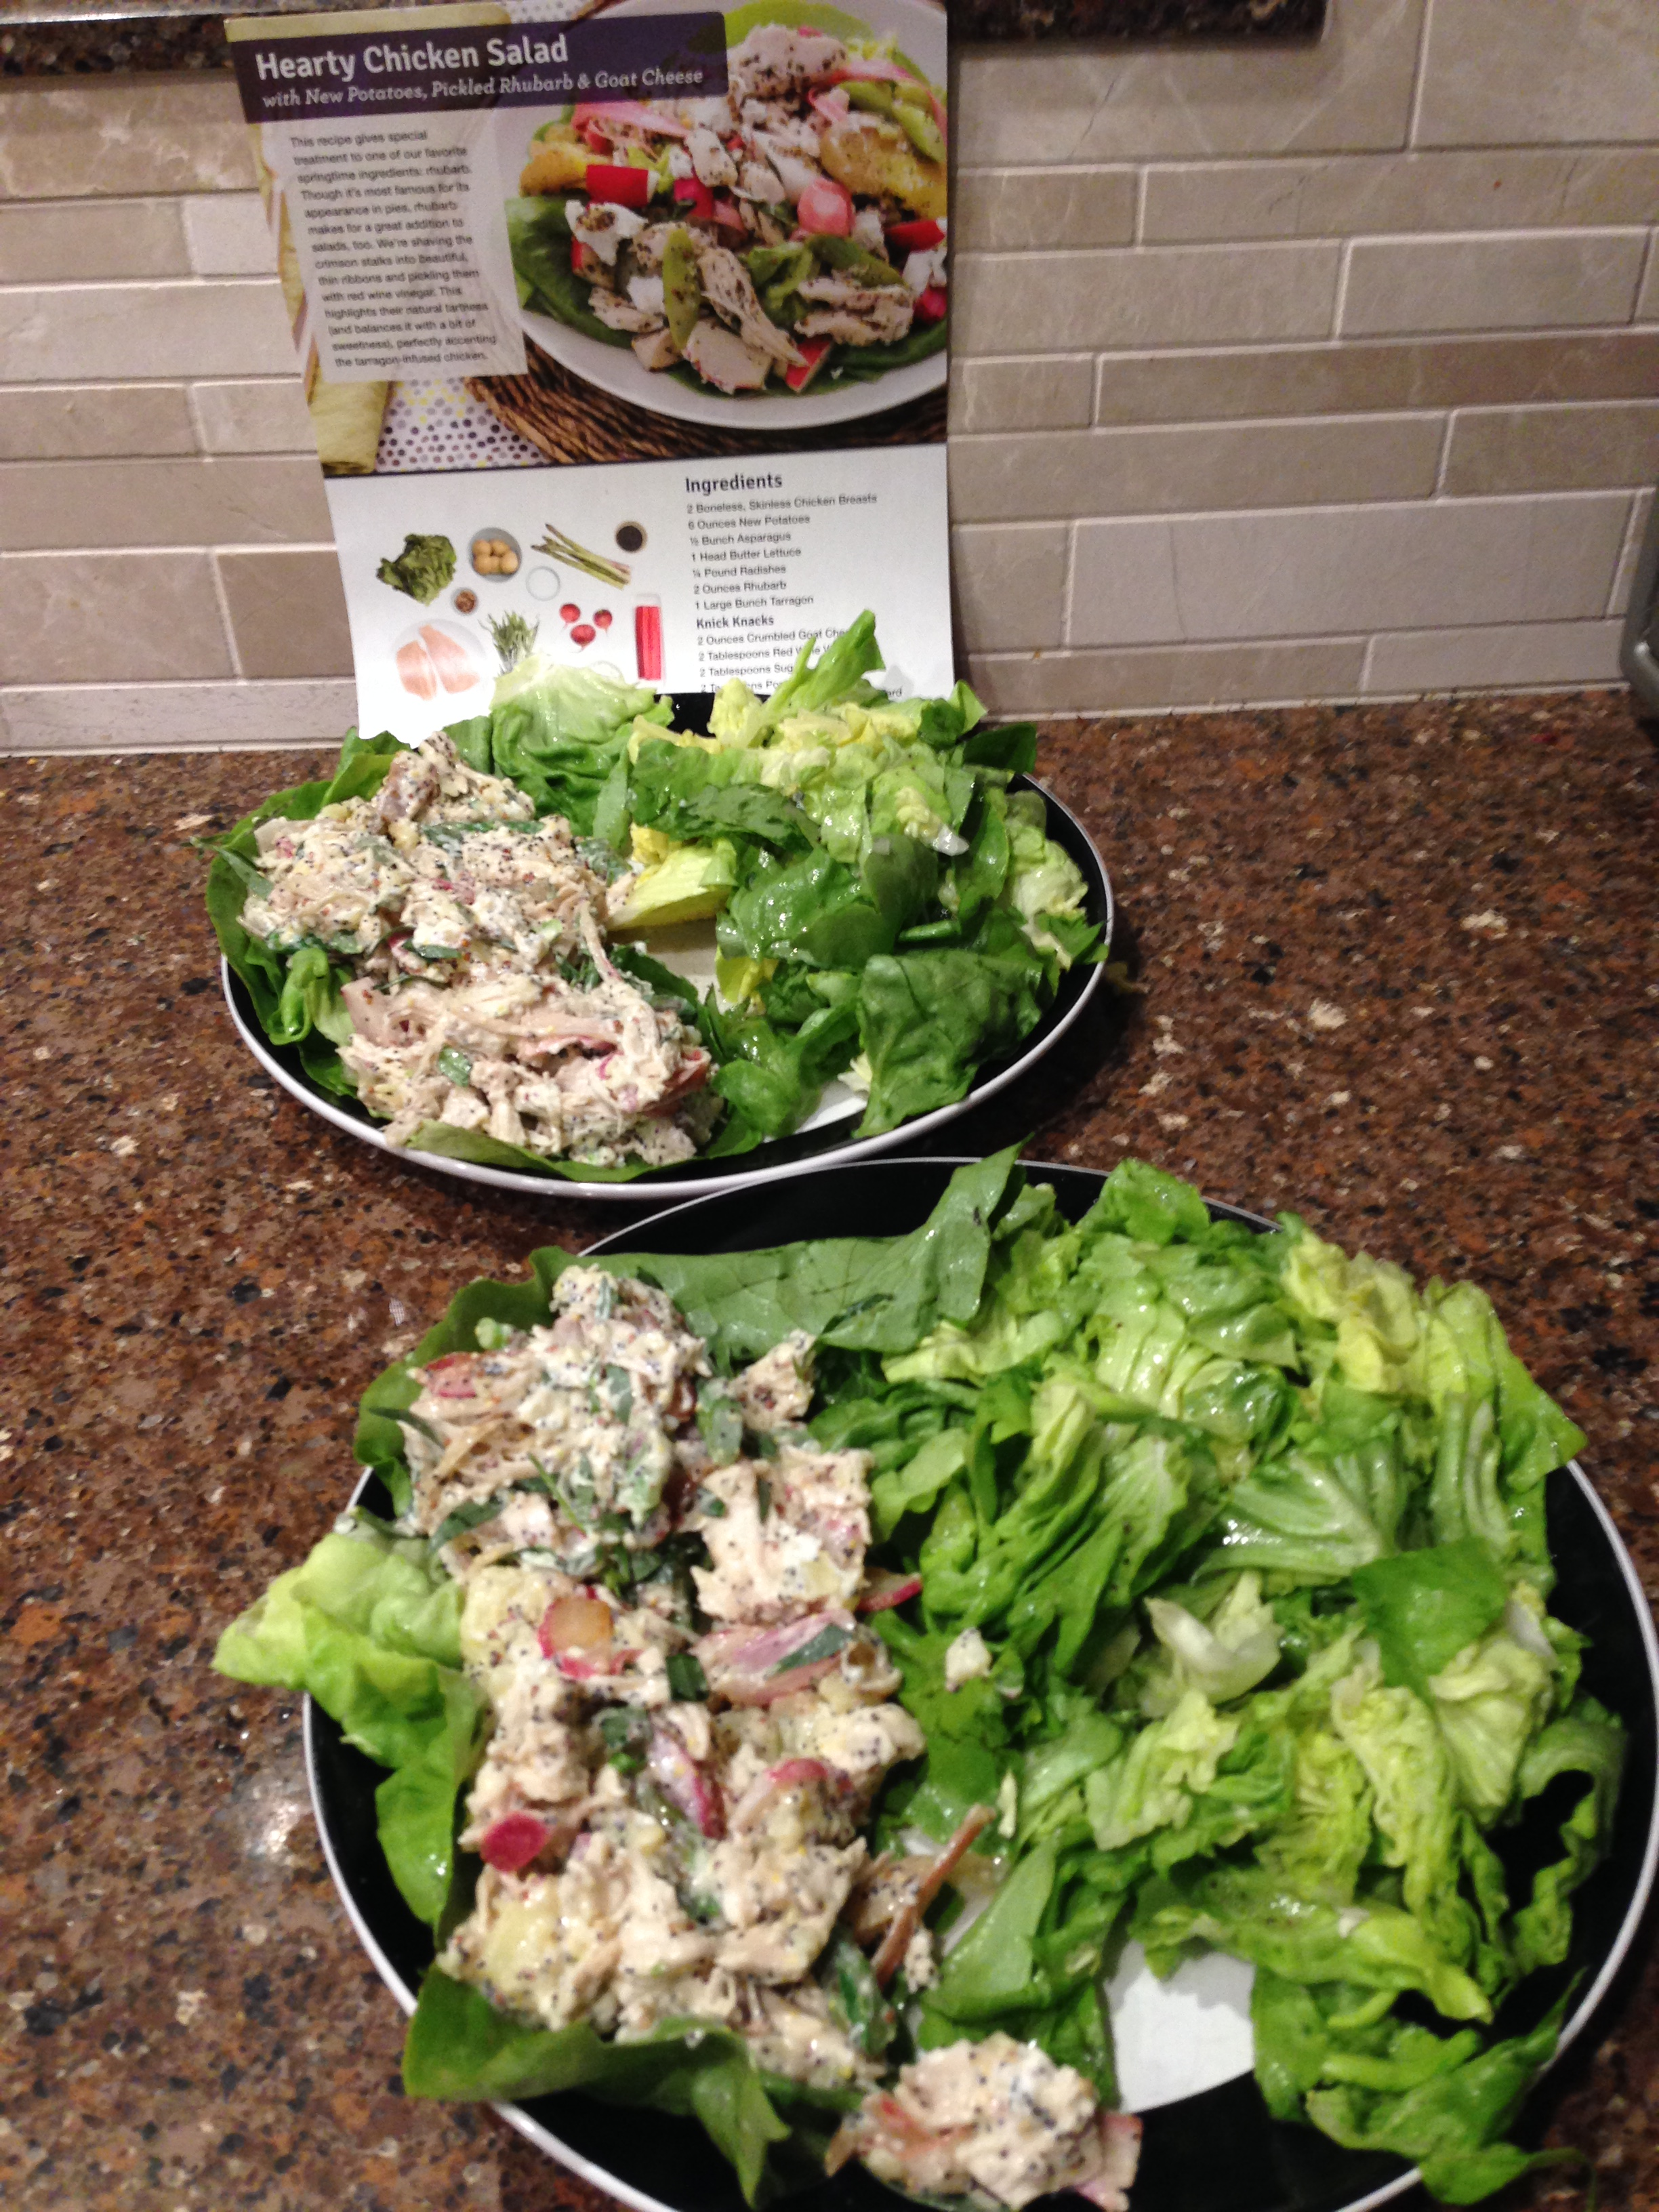 Blue apron quick pickles - 2015 05 13 Hearty Chicken Salad2